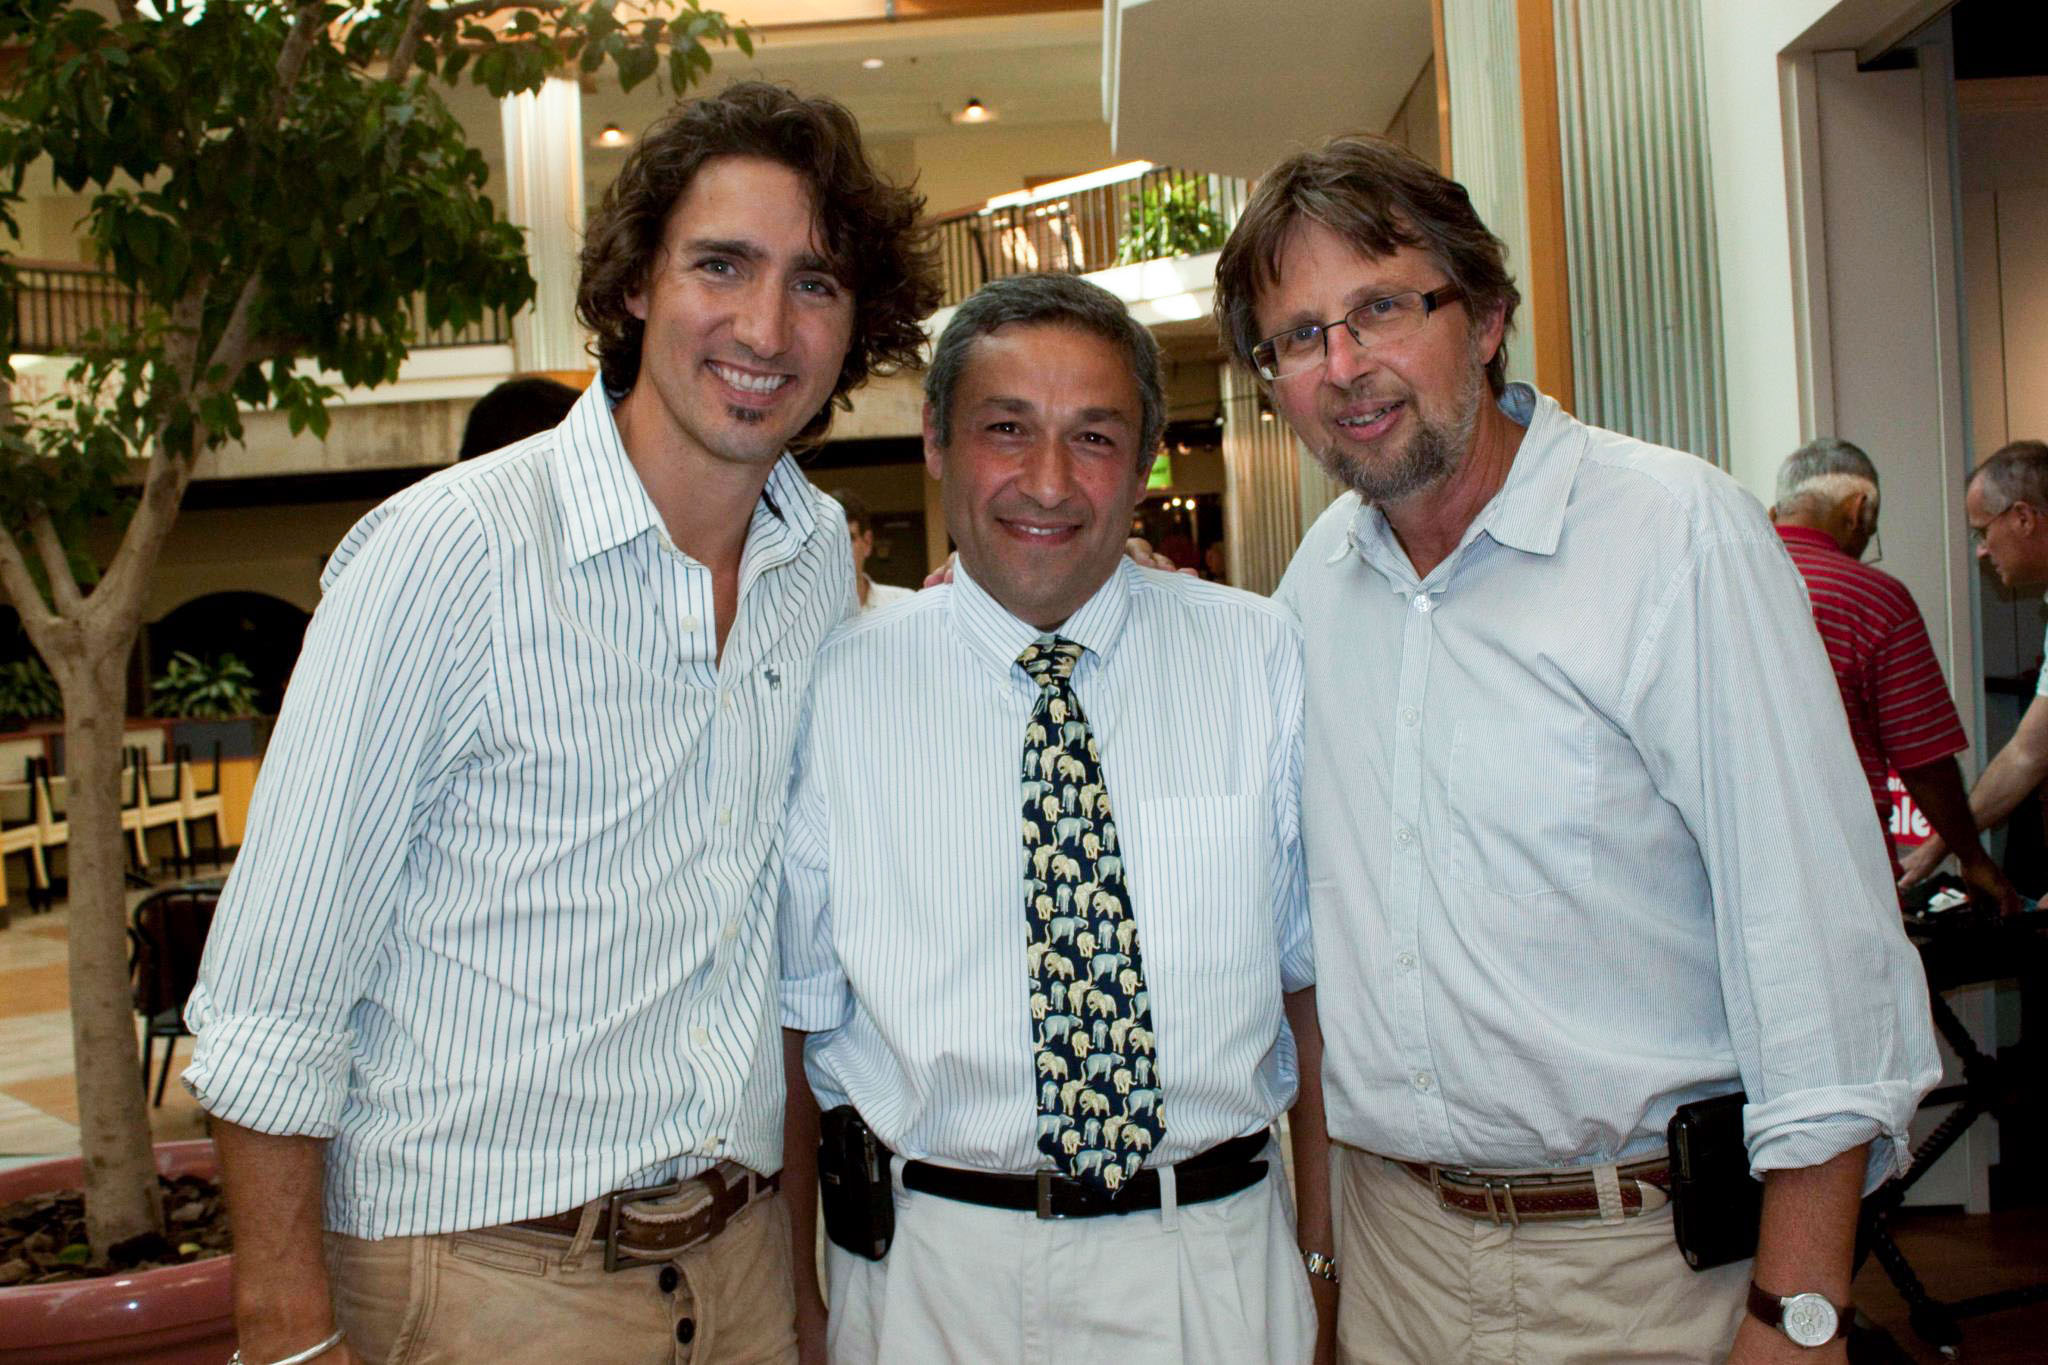 With Prime Minister Justin Trudeau and Senator Kutcher